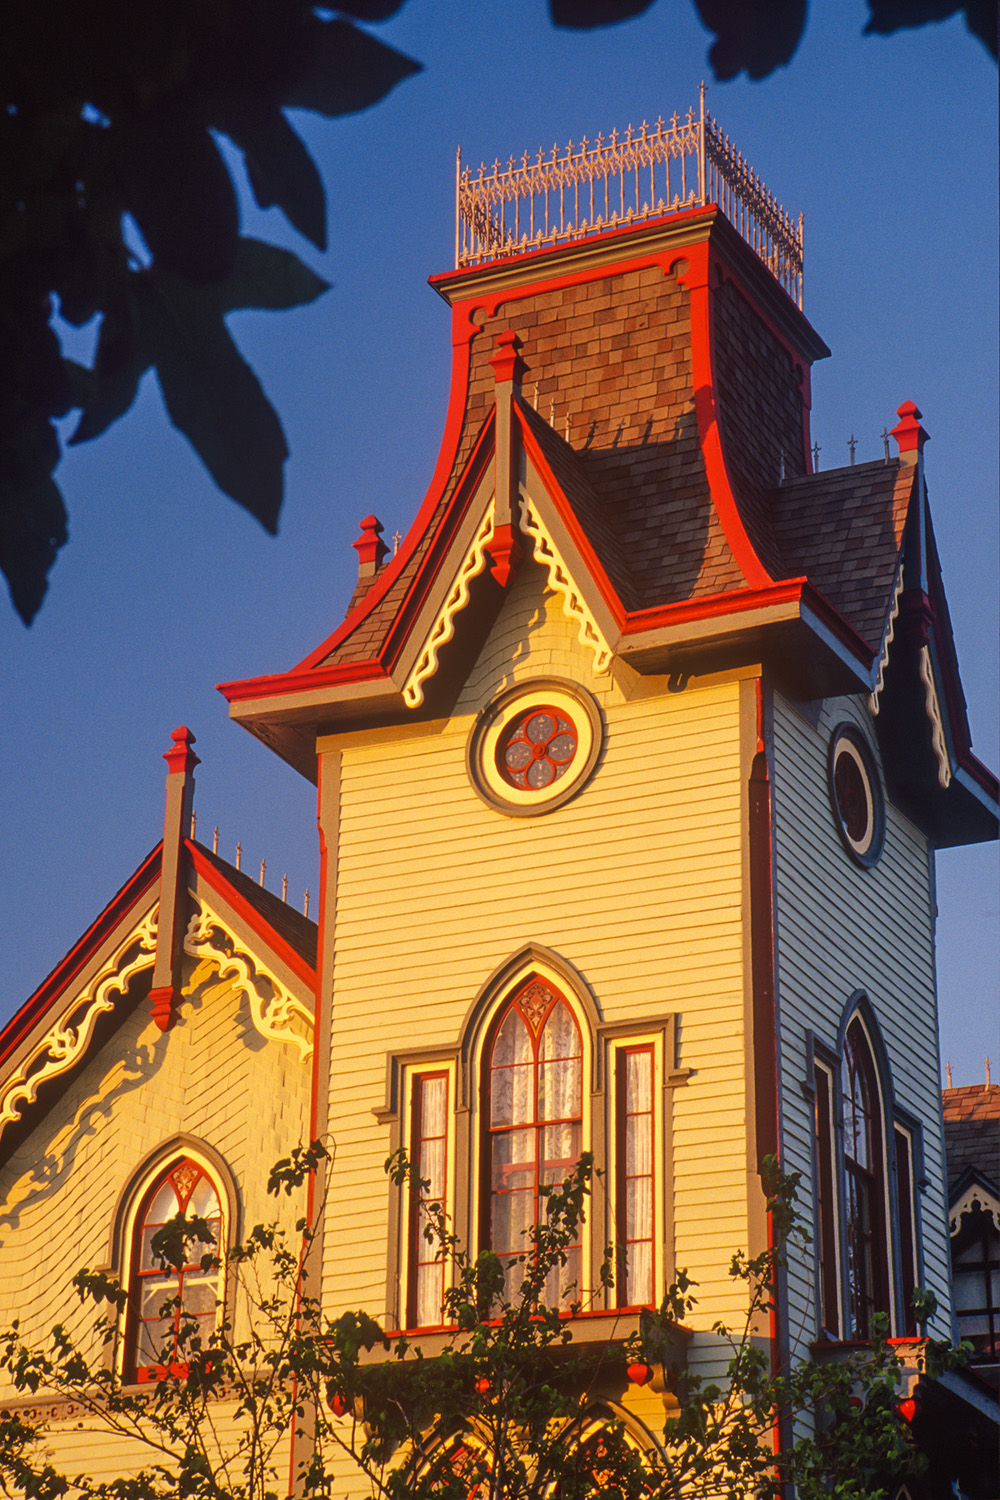 Photograph of Victorian architecture in Cape May, New Jersey